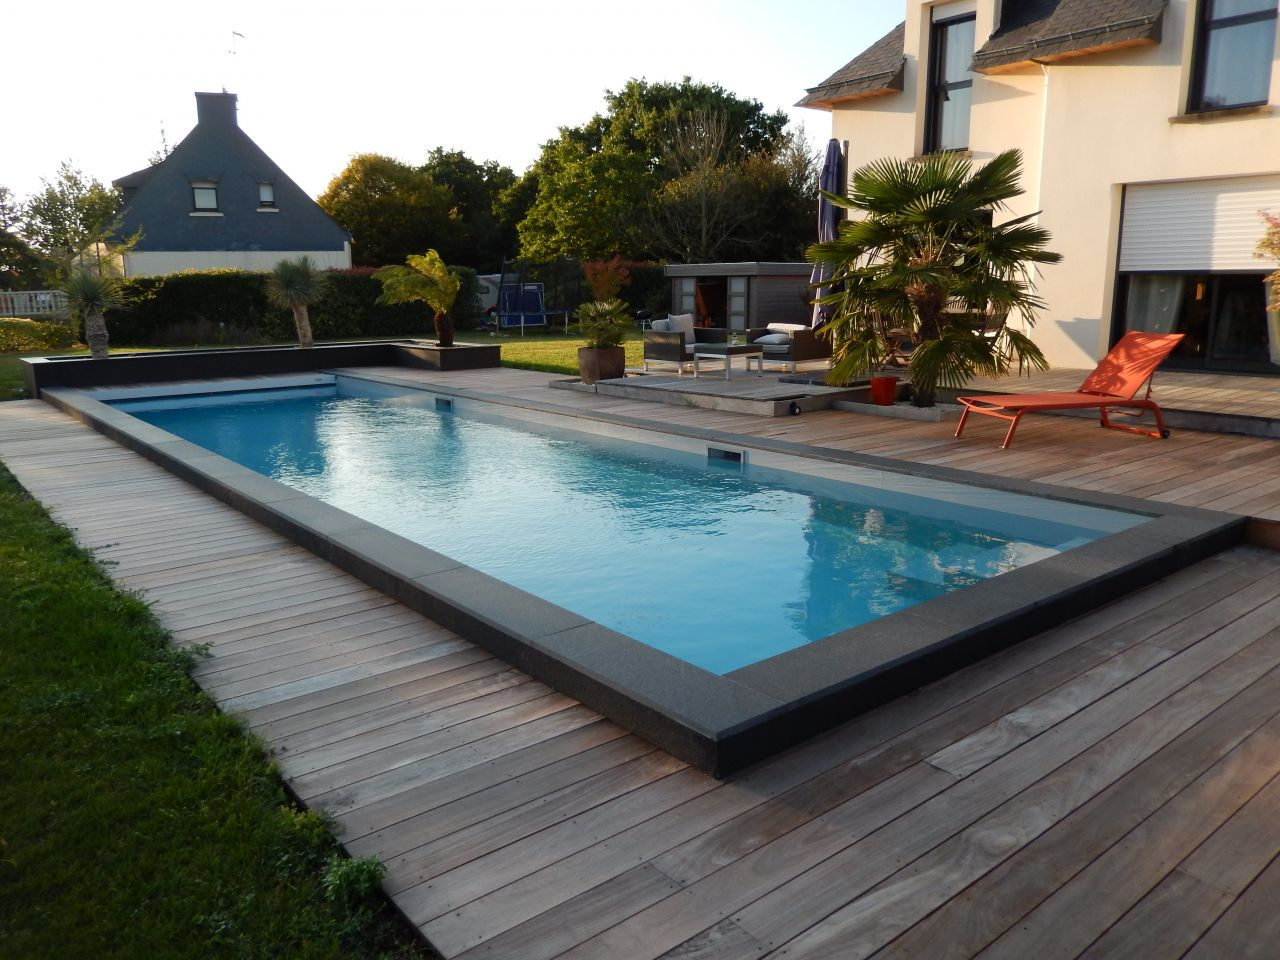 constructeur de couloir de nage piscine vannes morbihan. Black Bedroom Furniture Sets. Home Design Ideas